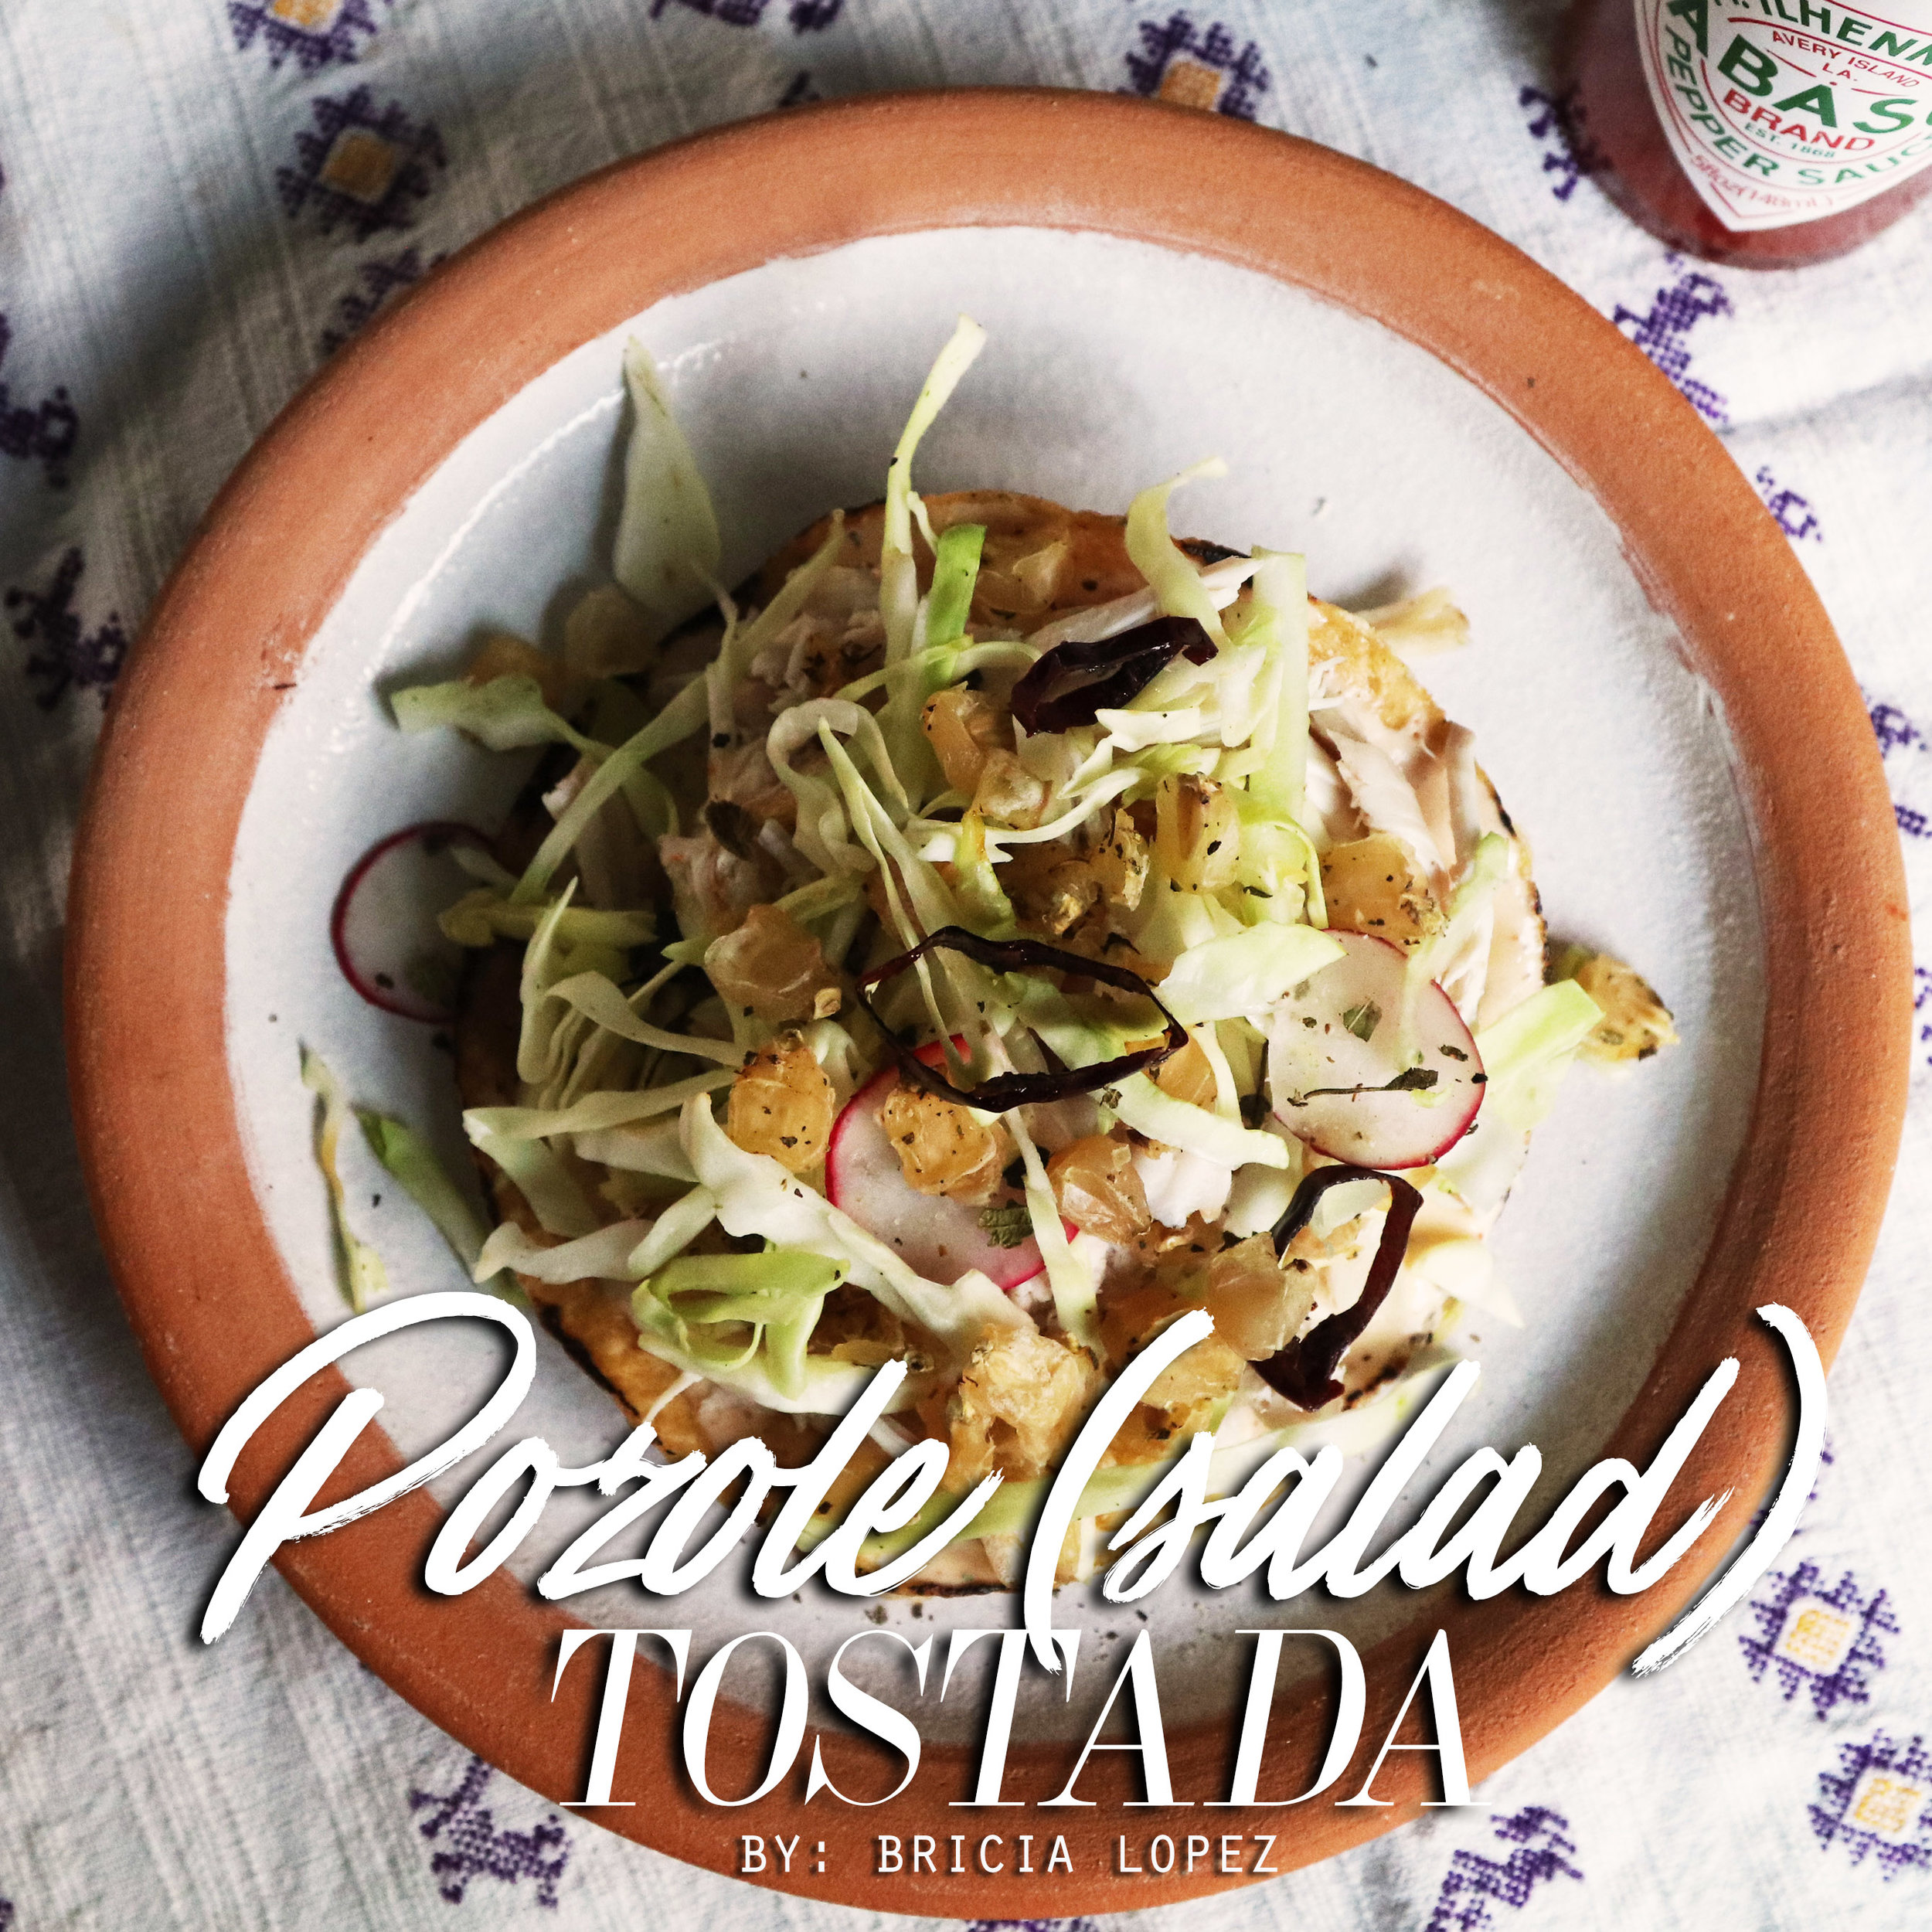 Pozole Tostada cover page.jpg